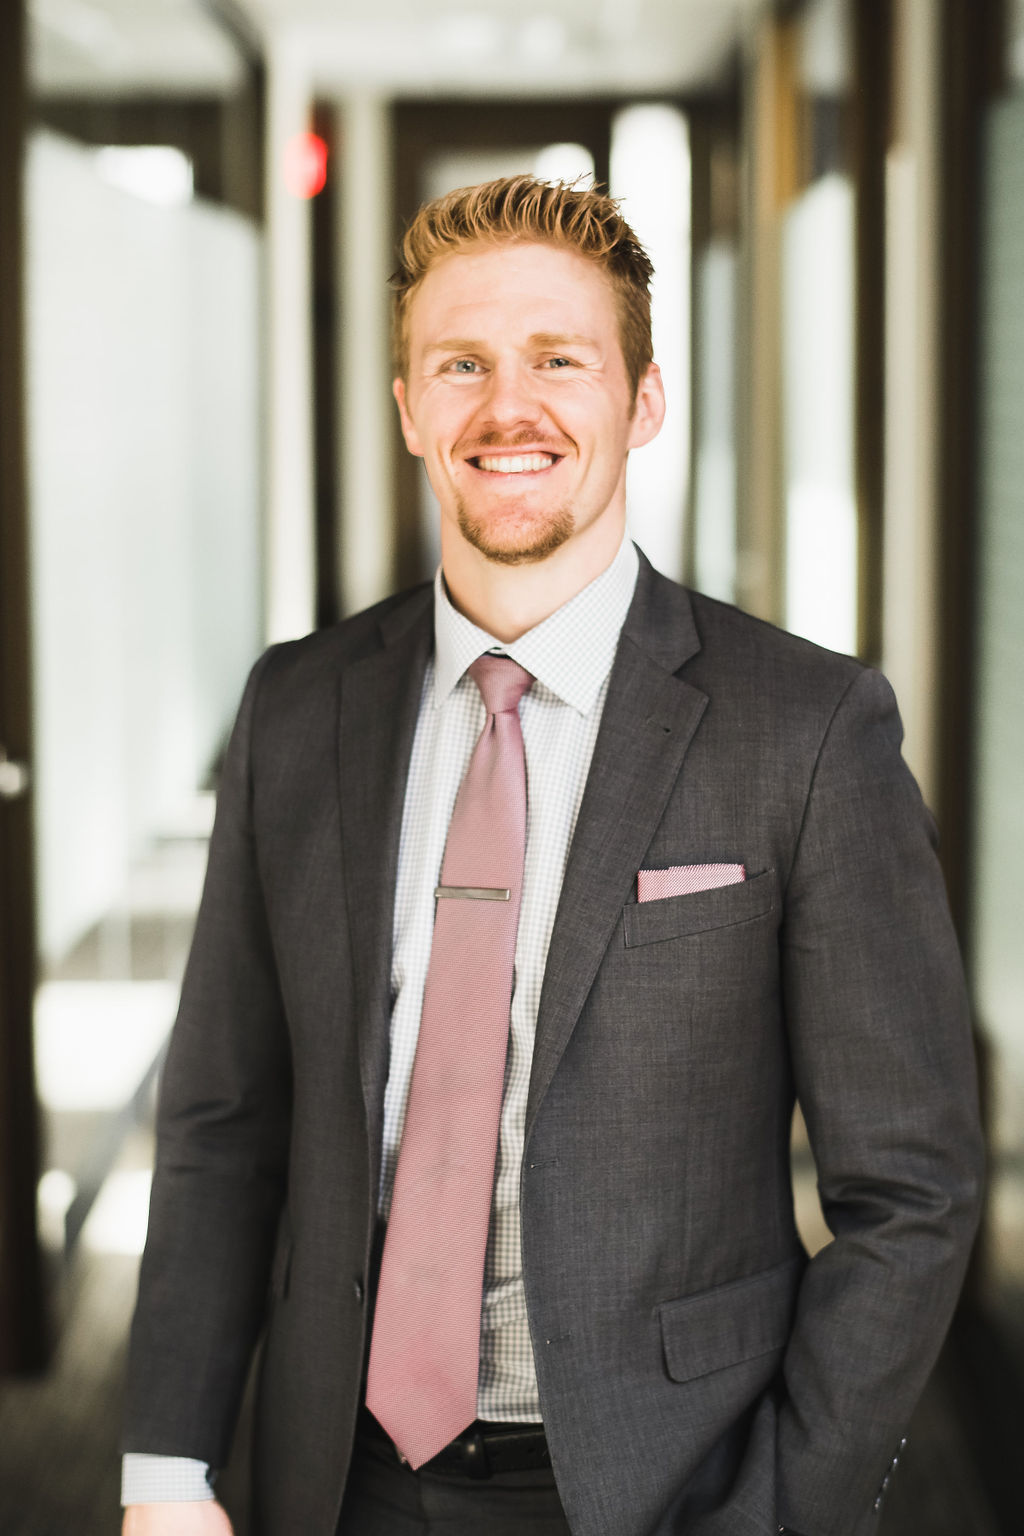 Will Johnson is a financial advisor at the great waters financial Vadnais Heights office